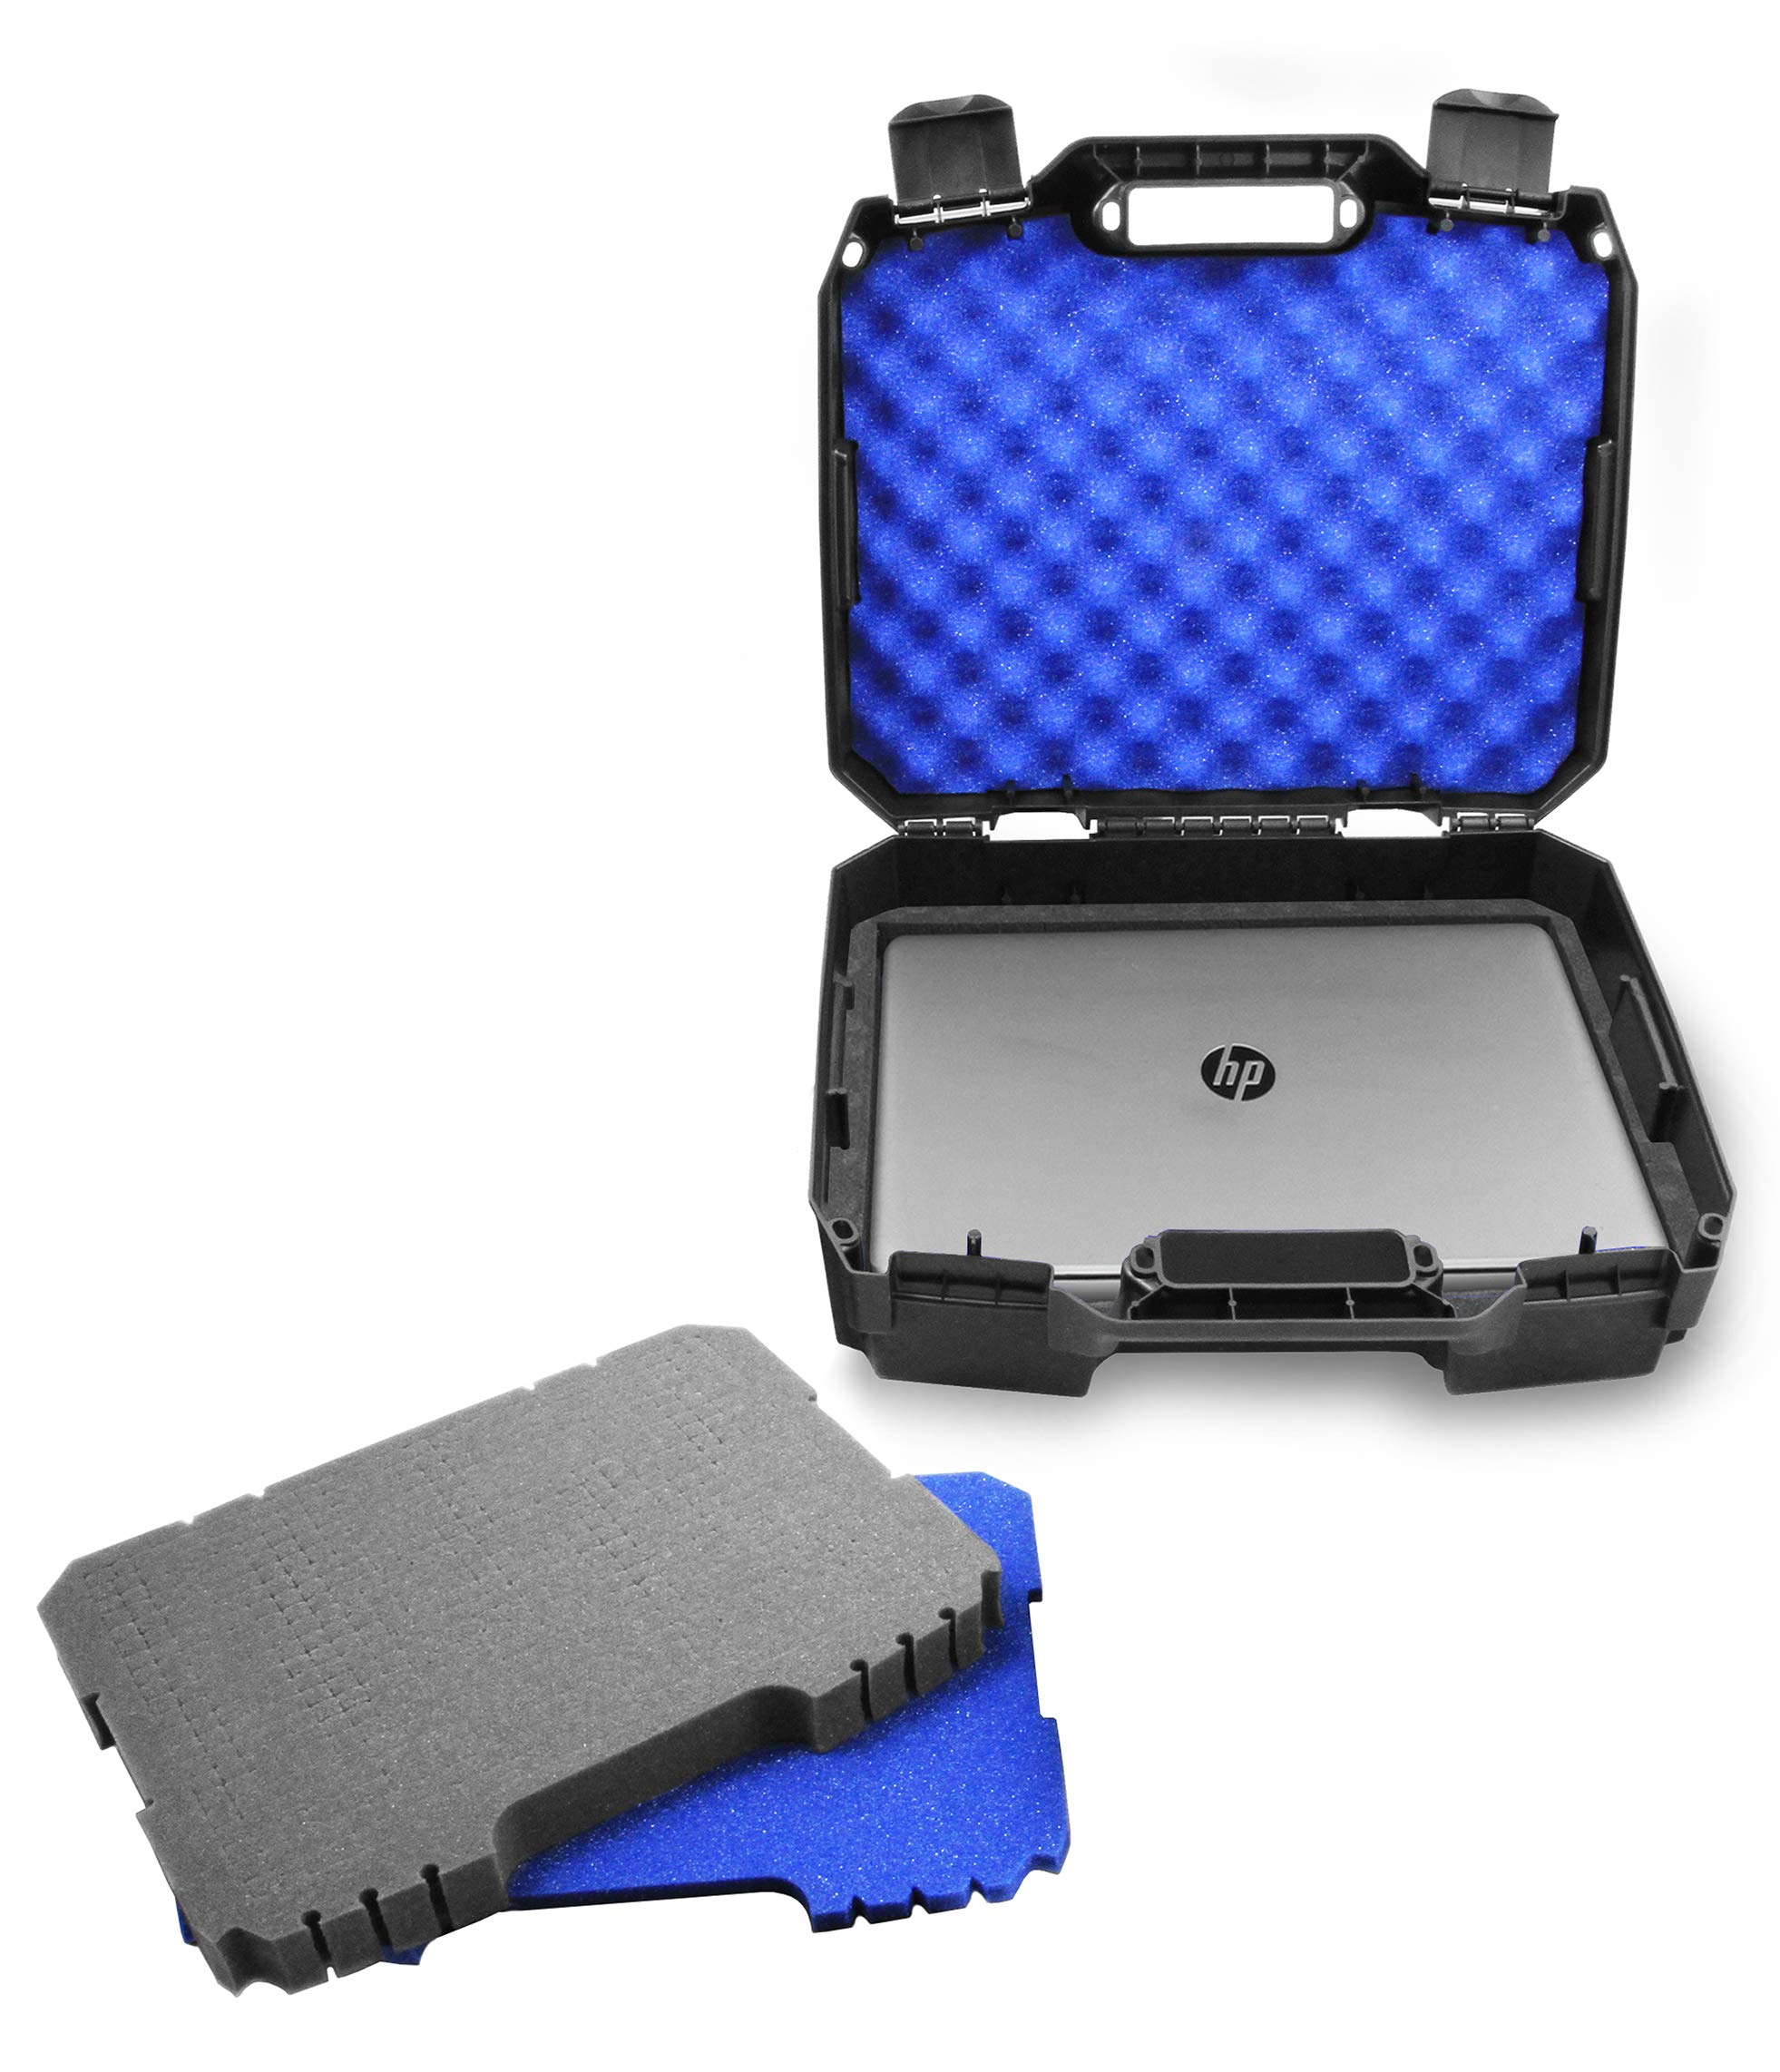 Casematix Hard Laptop Case Compatible with 15.6 inch HP Pavillion 360, Envy 360 X360, Stream 14, Chromebook 14, Spectre X360 15, LG Gram and Laptop Accessories with Customizable Foam